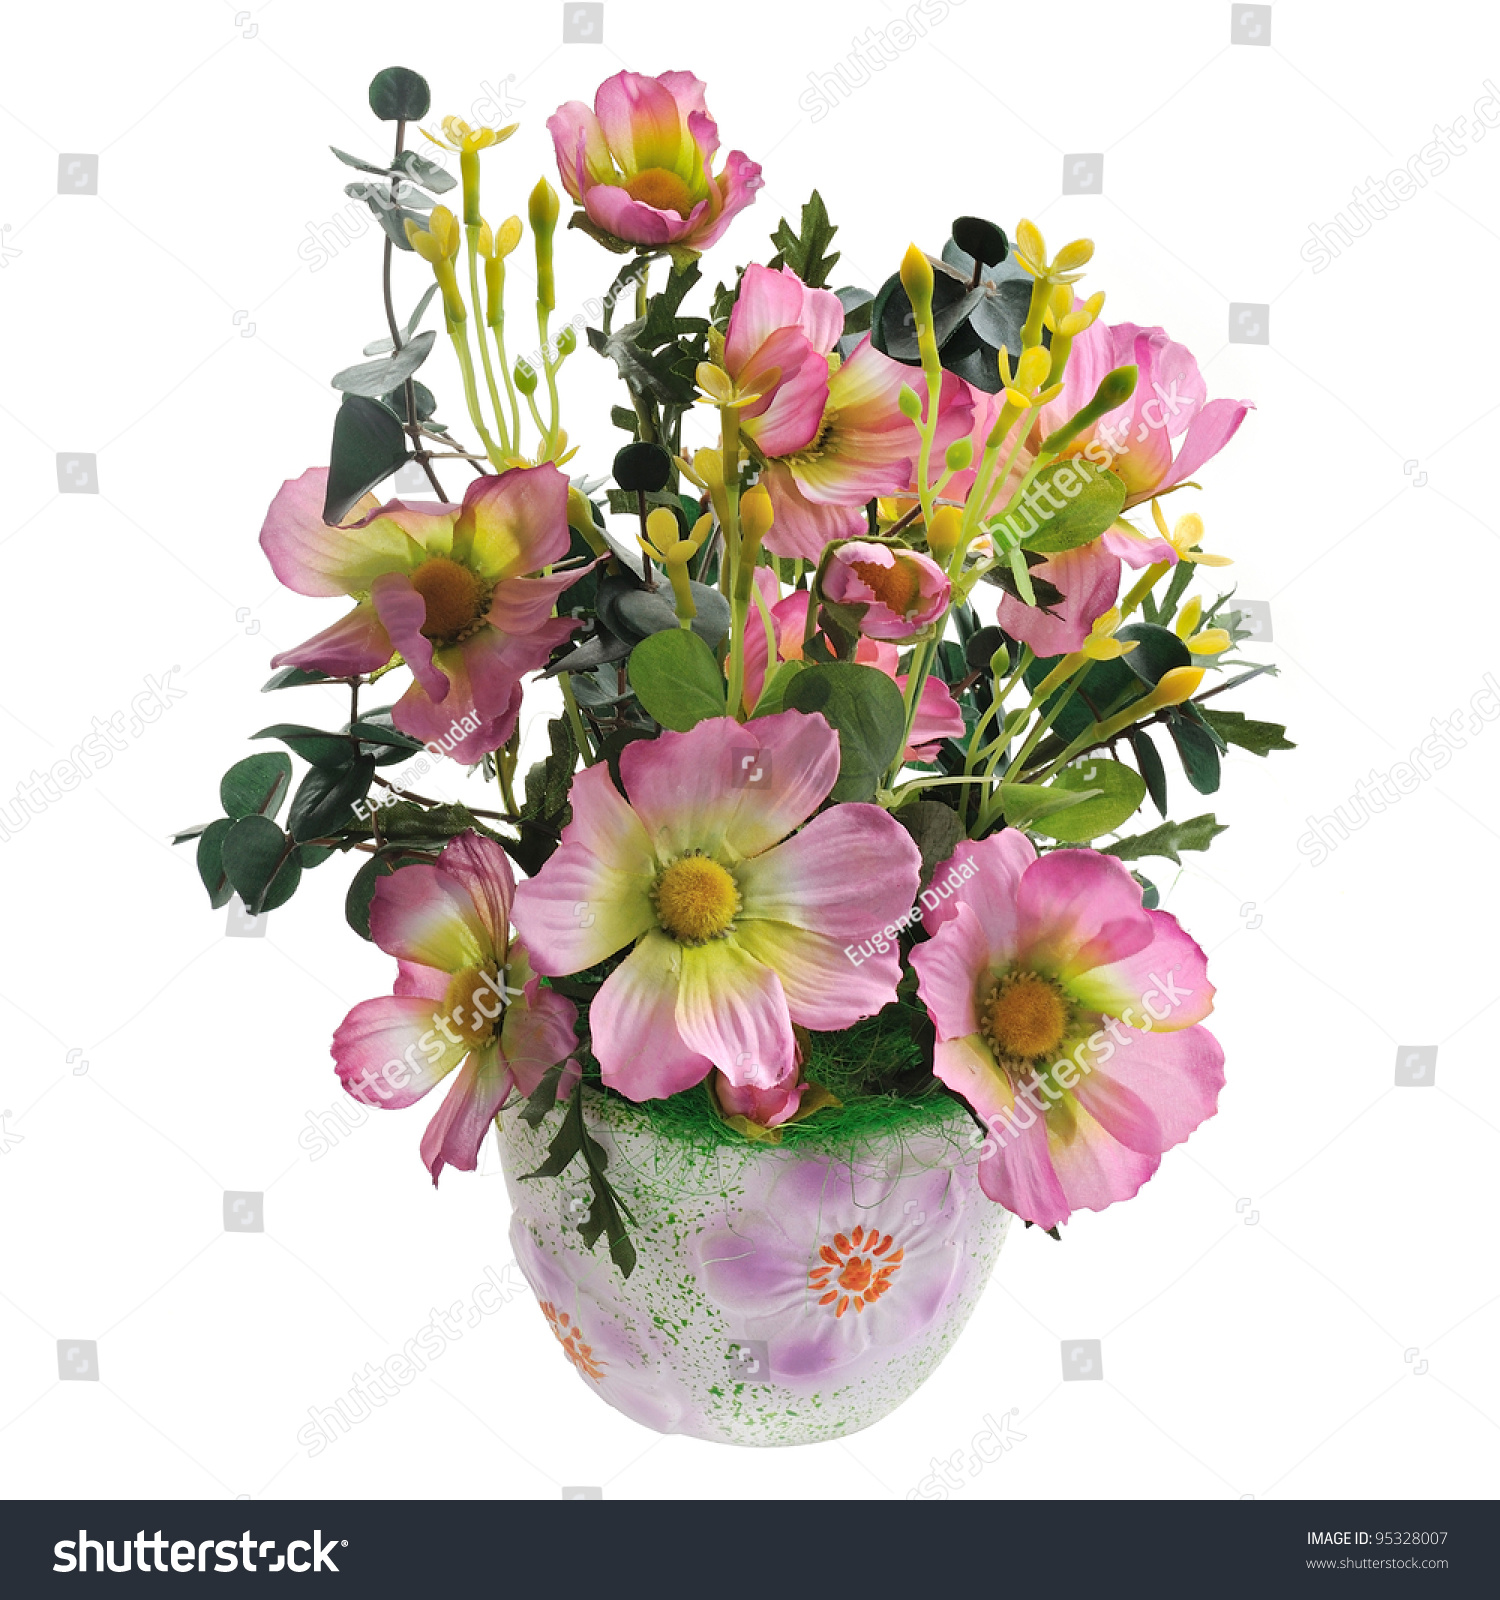 Flower Pots With Artificial Flowers Stock Photo Ceramic Flowerpot With Artificial Flowers